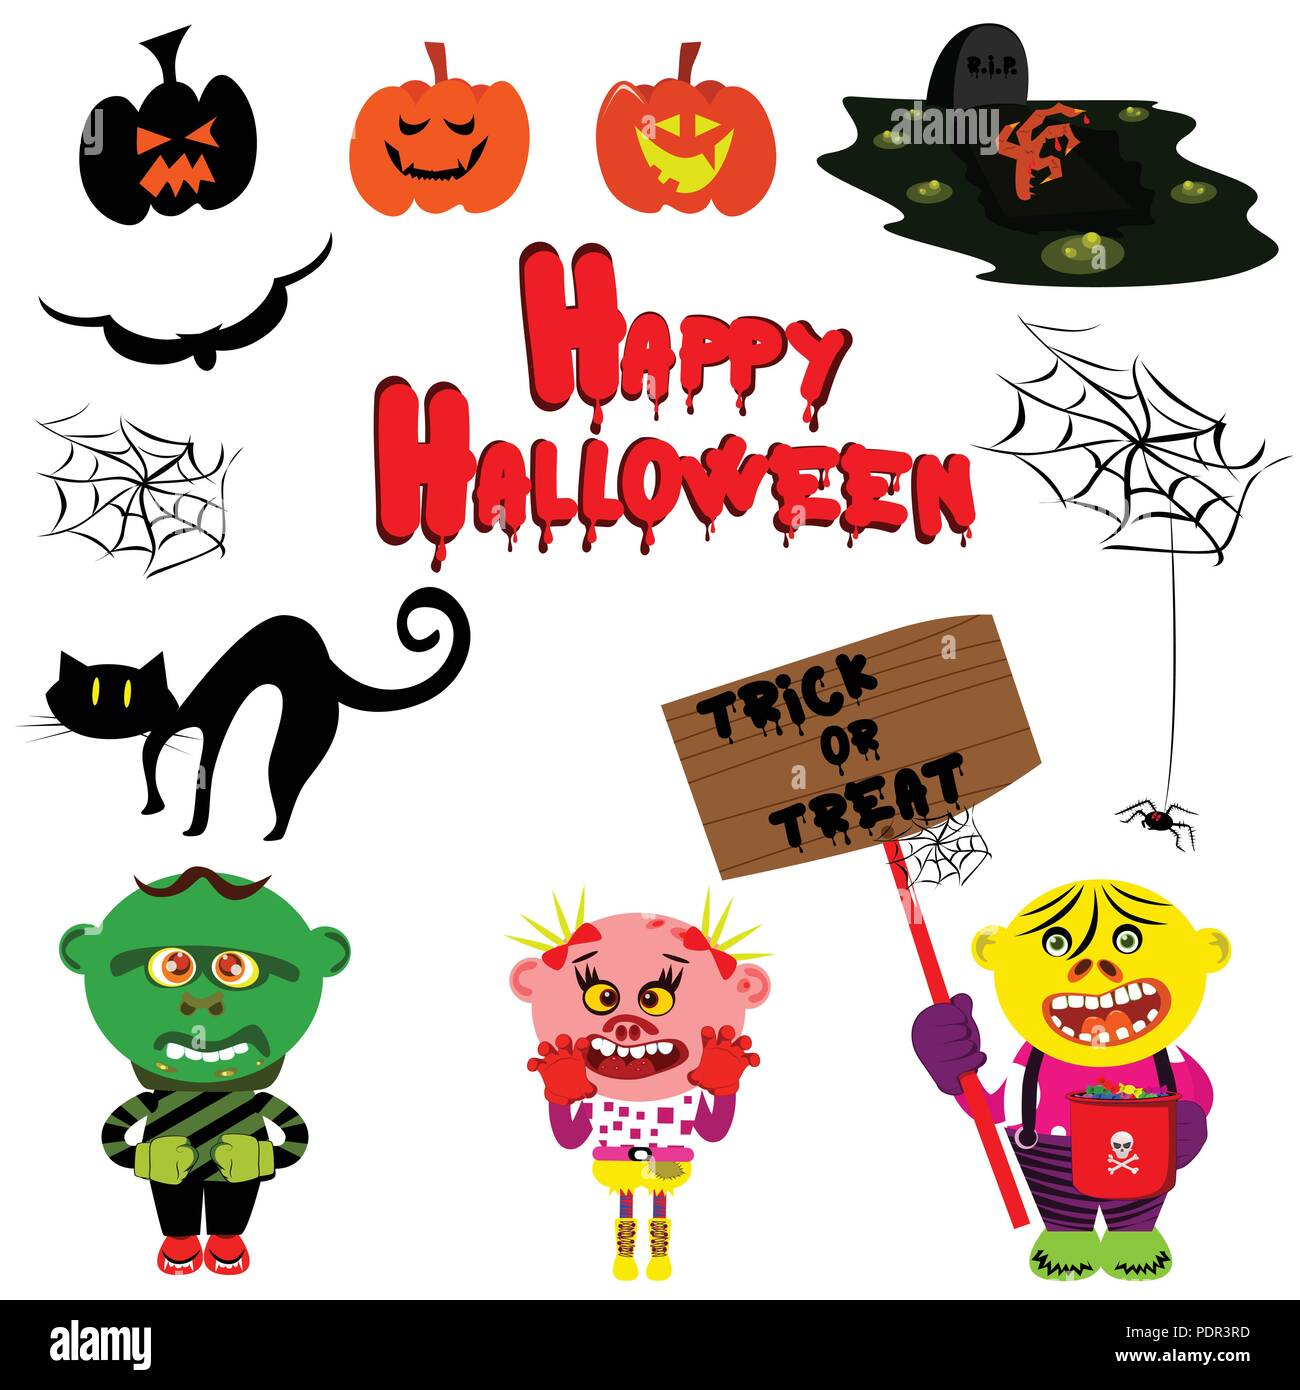 Vector set for Halloween in cartoon style. Illustration of characters and icons on white background. Kids in costumes, pumpkins and other traditional  - Stock Vector